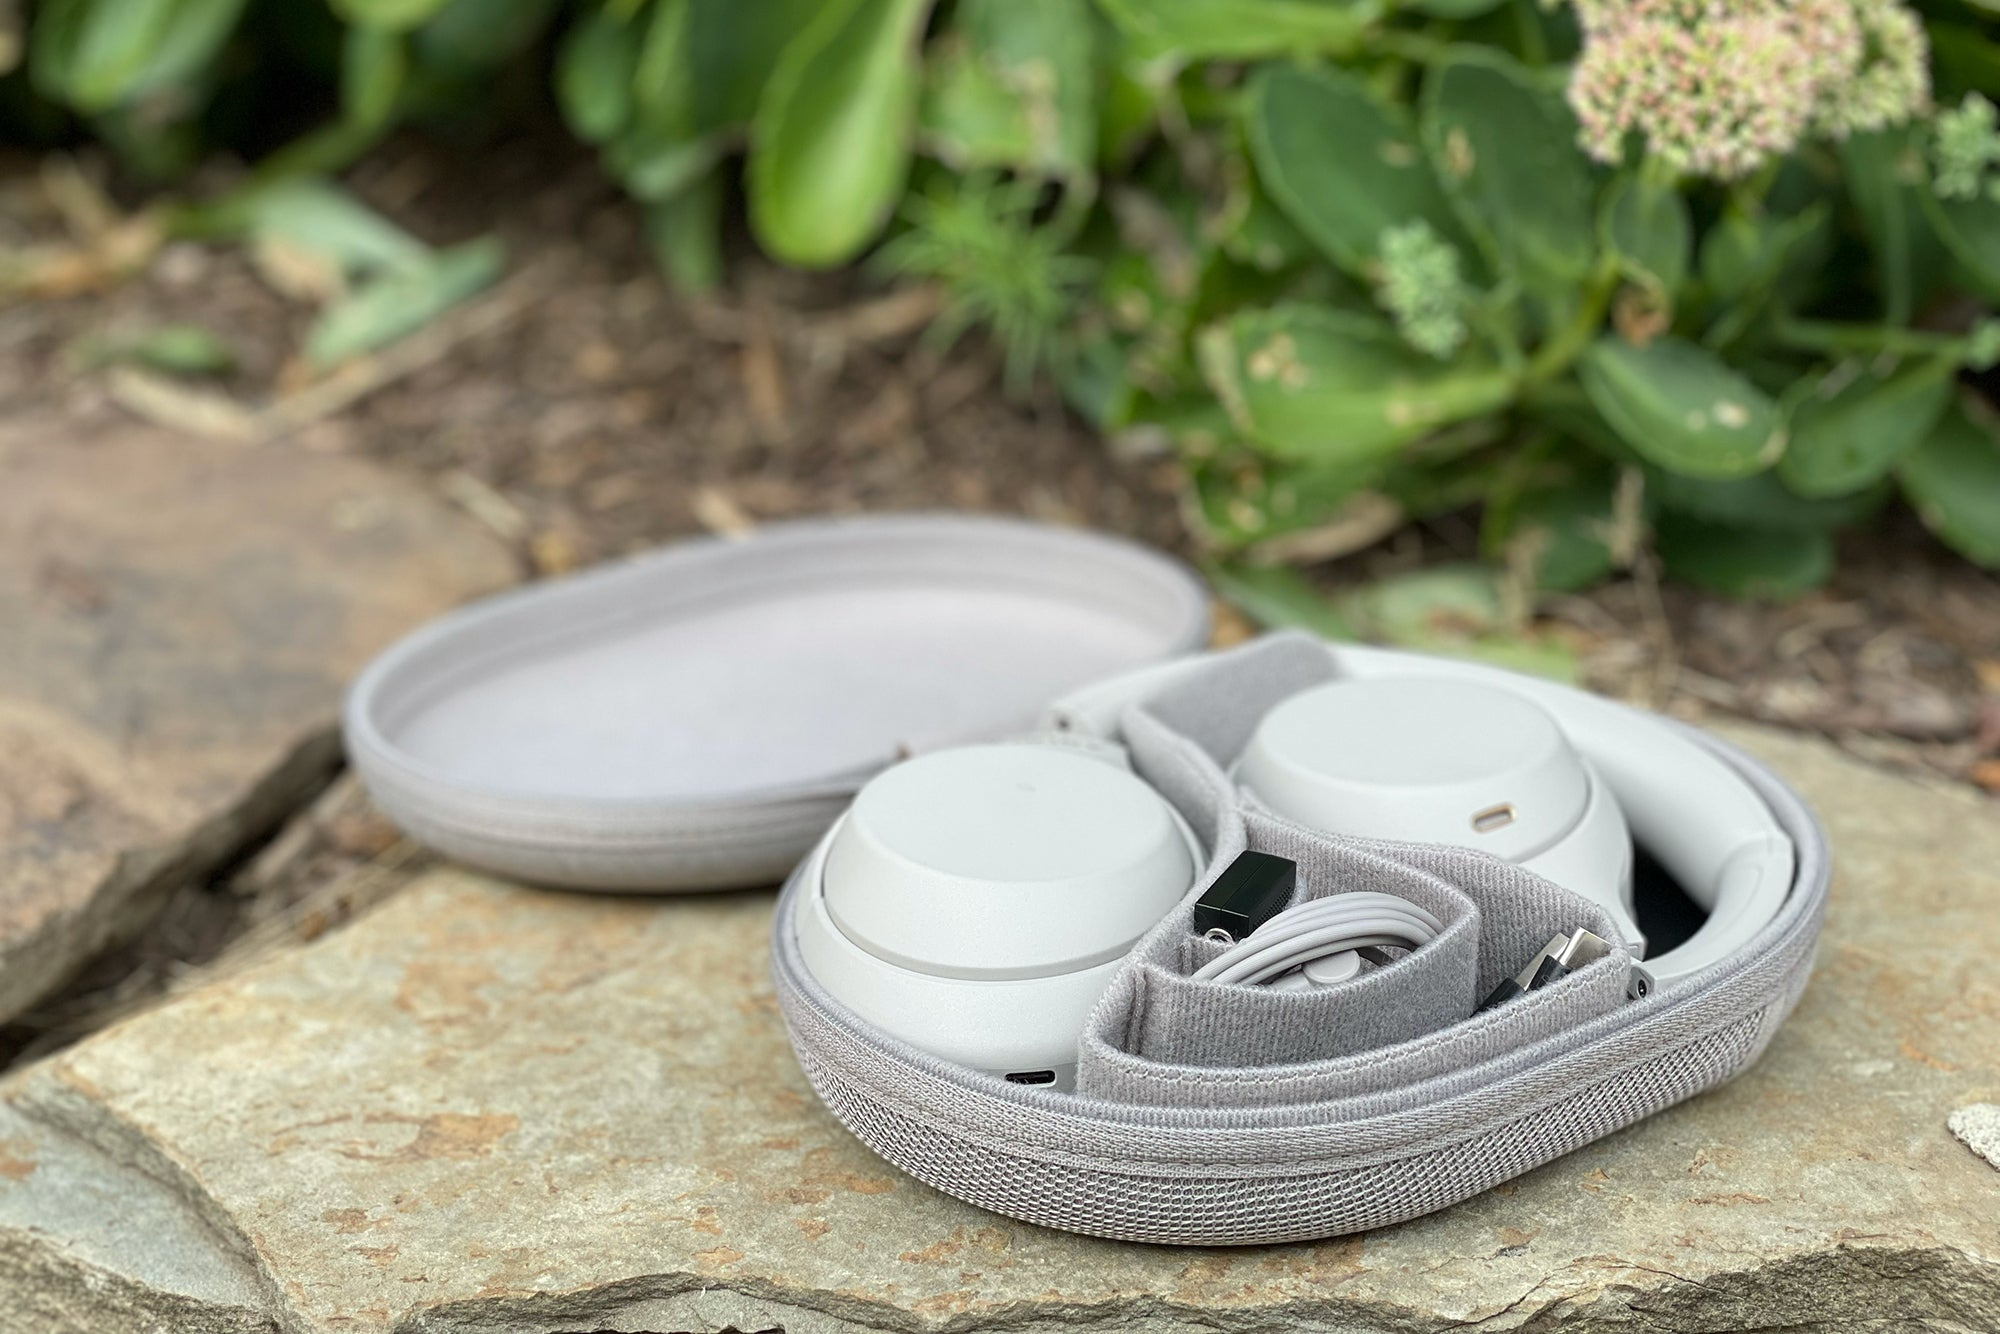 Sony WH-1000XM4 noise cancelling headphones flat in its case